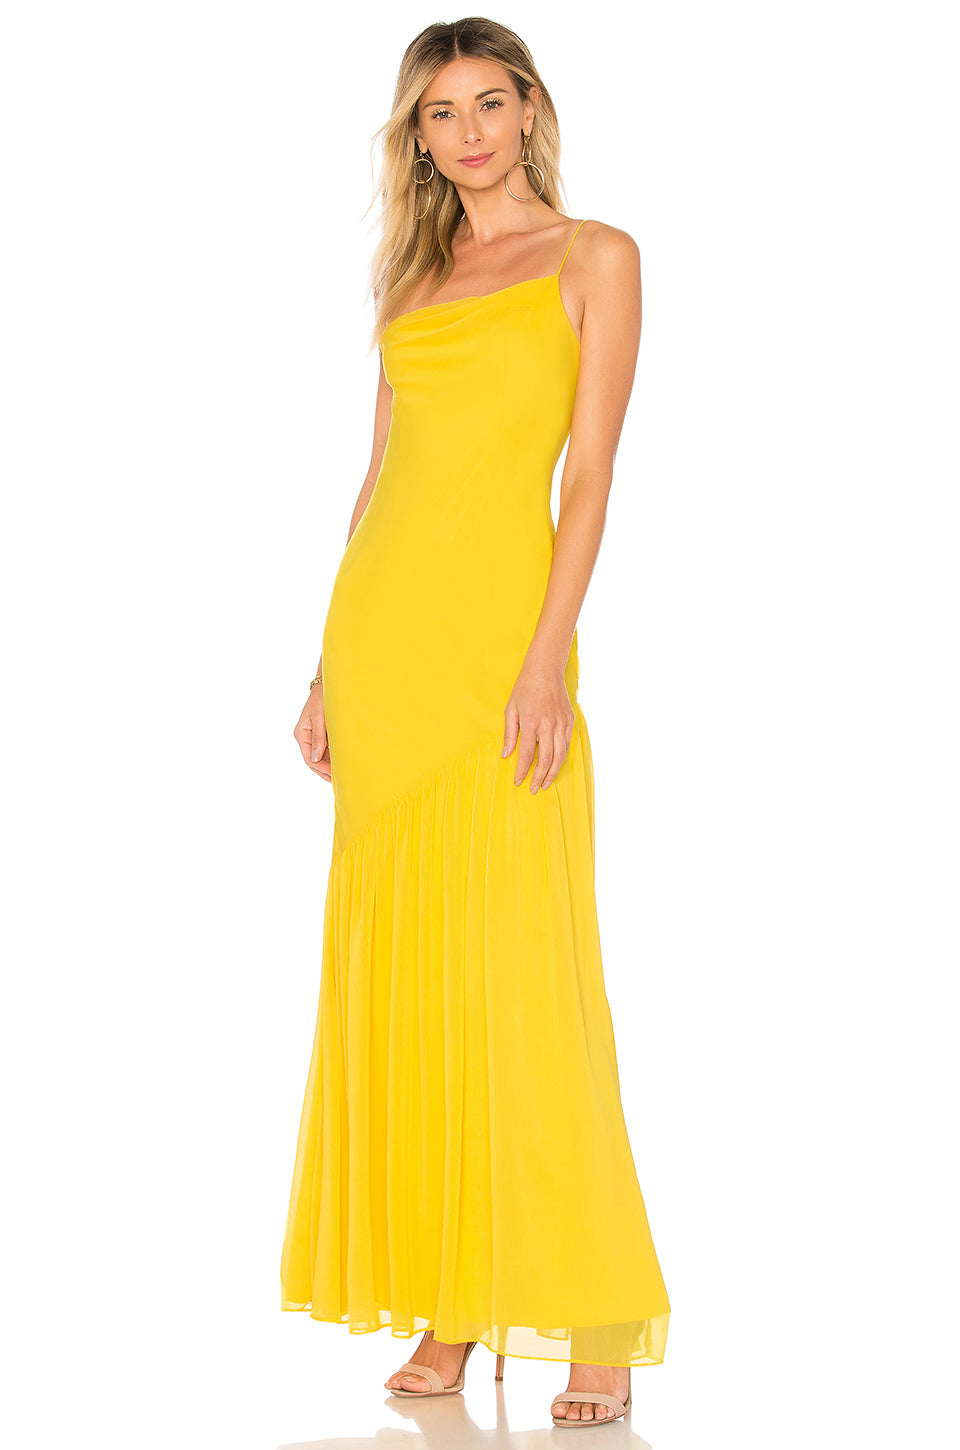 Dawson Gown in Canary Yellow | Lovers + Friends - Lovers + Friends